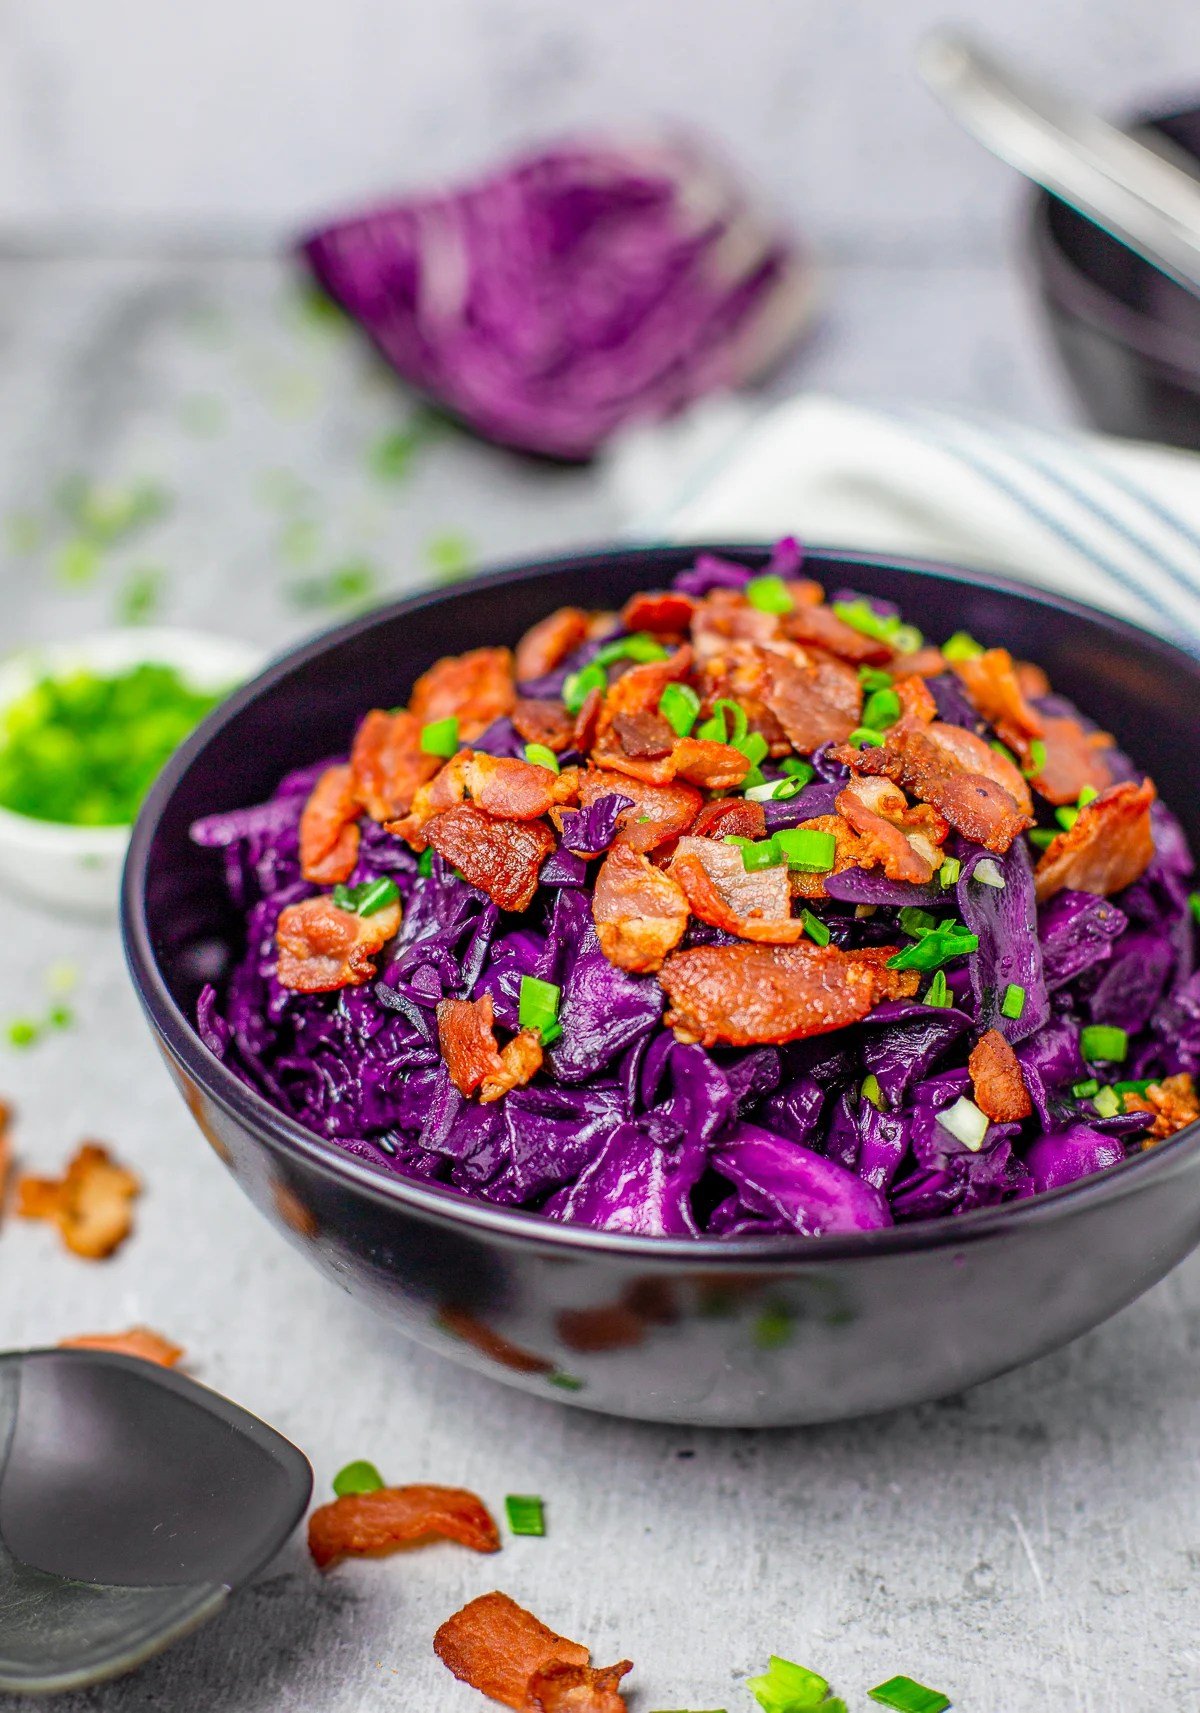 Bowl of Sweet and Sour Cabbage recipe side view.